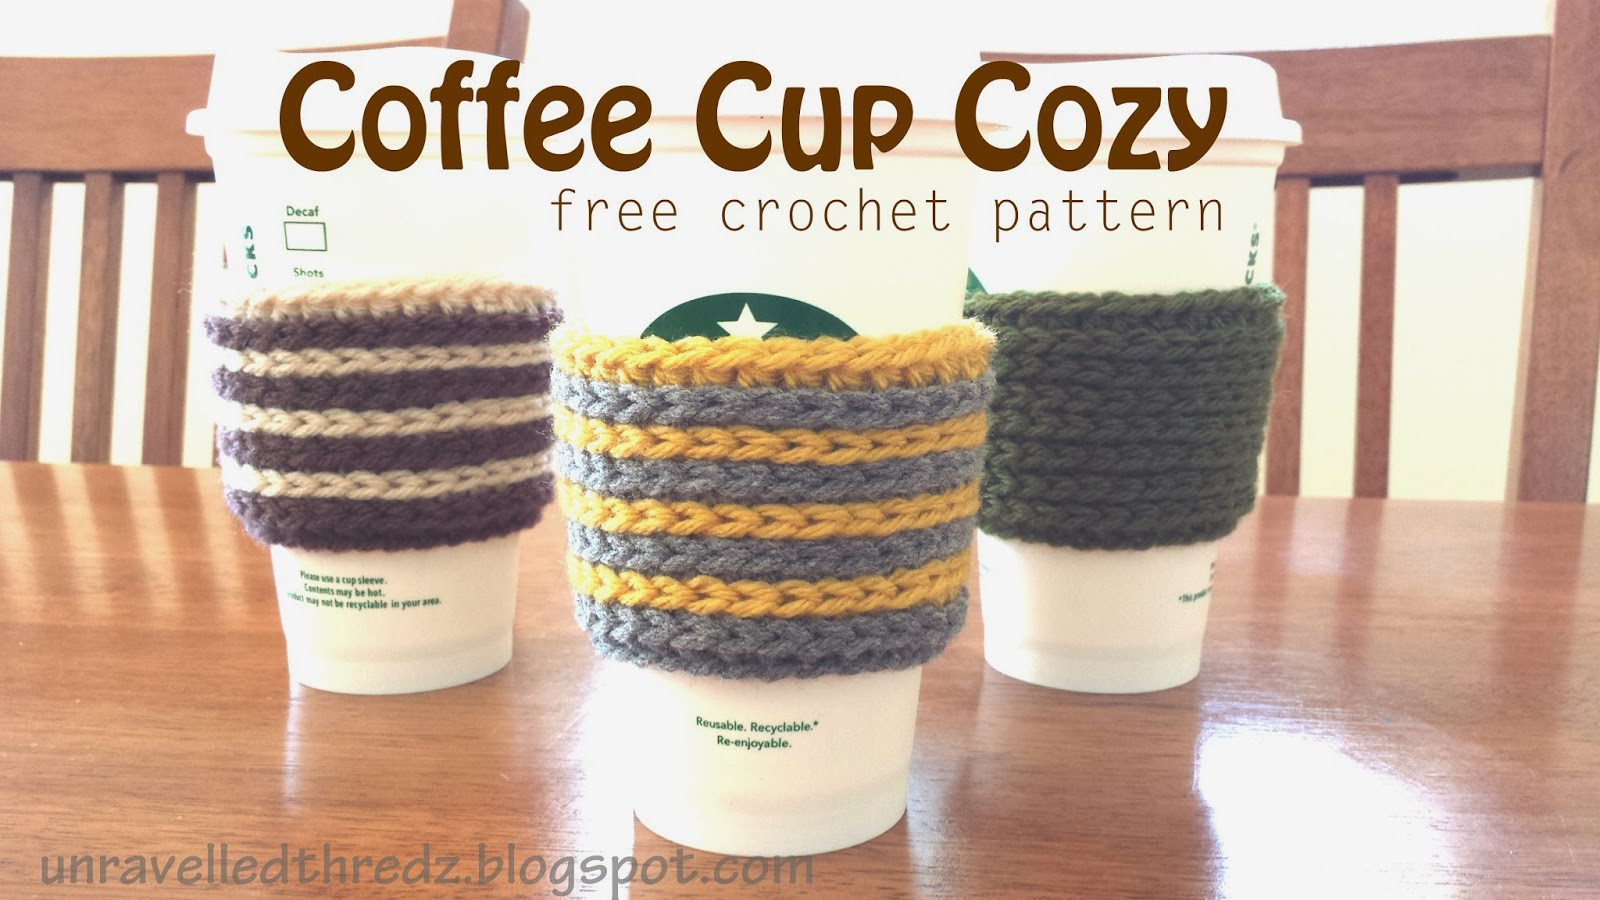 Crochet Coffee Cup Cozy Inspirational Crochet Class Beginning Crochet Sparkleez Crystles Of Crochet Coffee Cup Cozy Awesome Free Mug Cozy Crochet Patterns with Worsted Weight Yarn